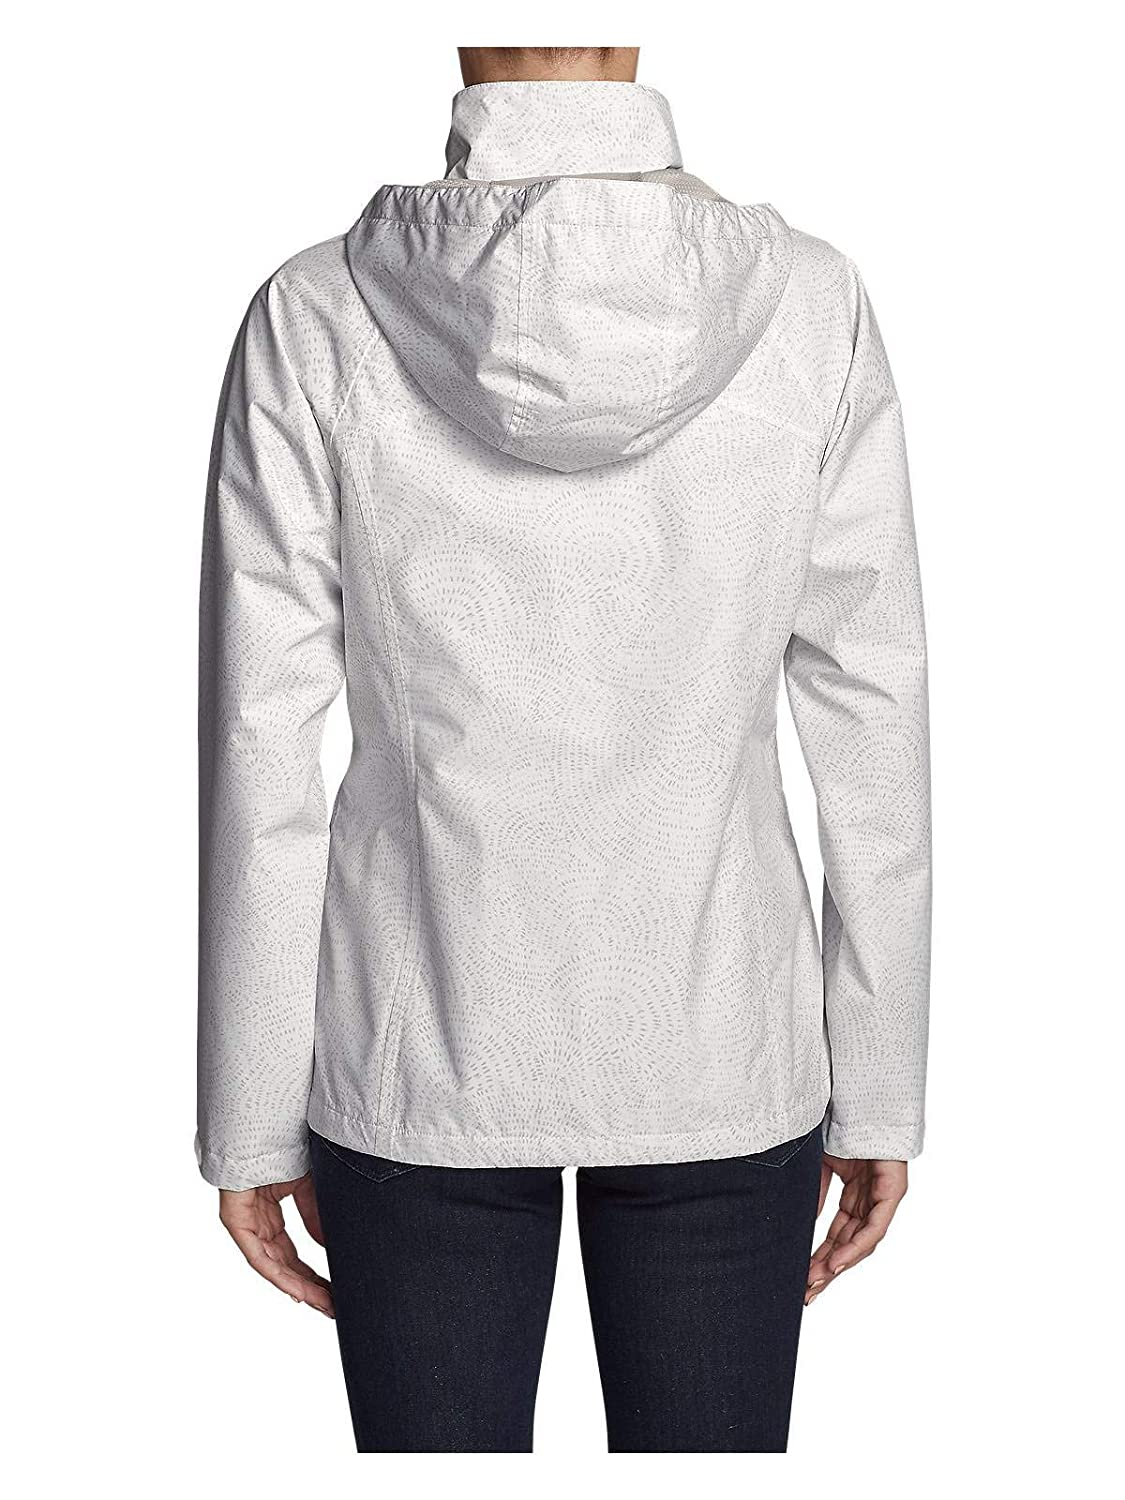 2c65ac7e83be9 Amazon.com  Eddie Bauer Women s Rainfoil Packable Jacket  Clothing